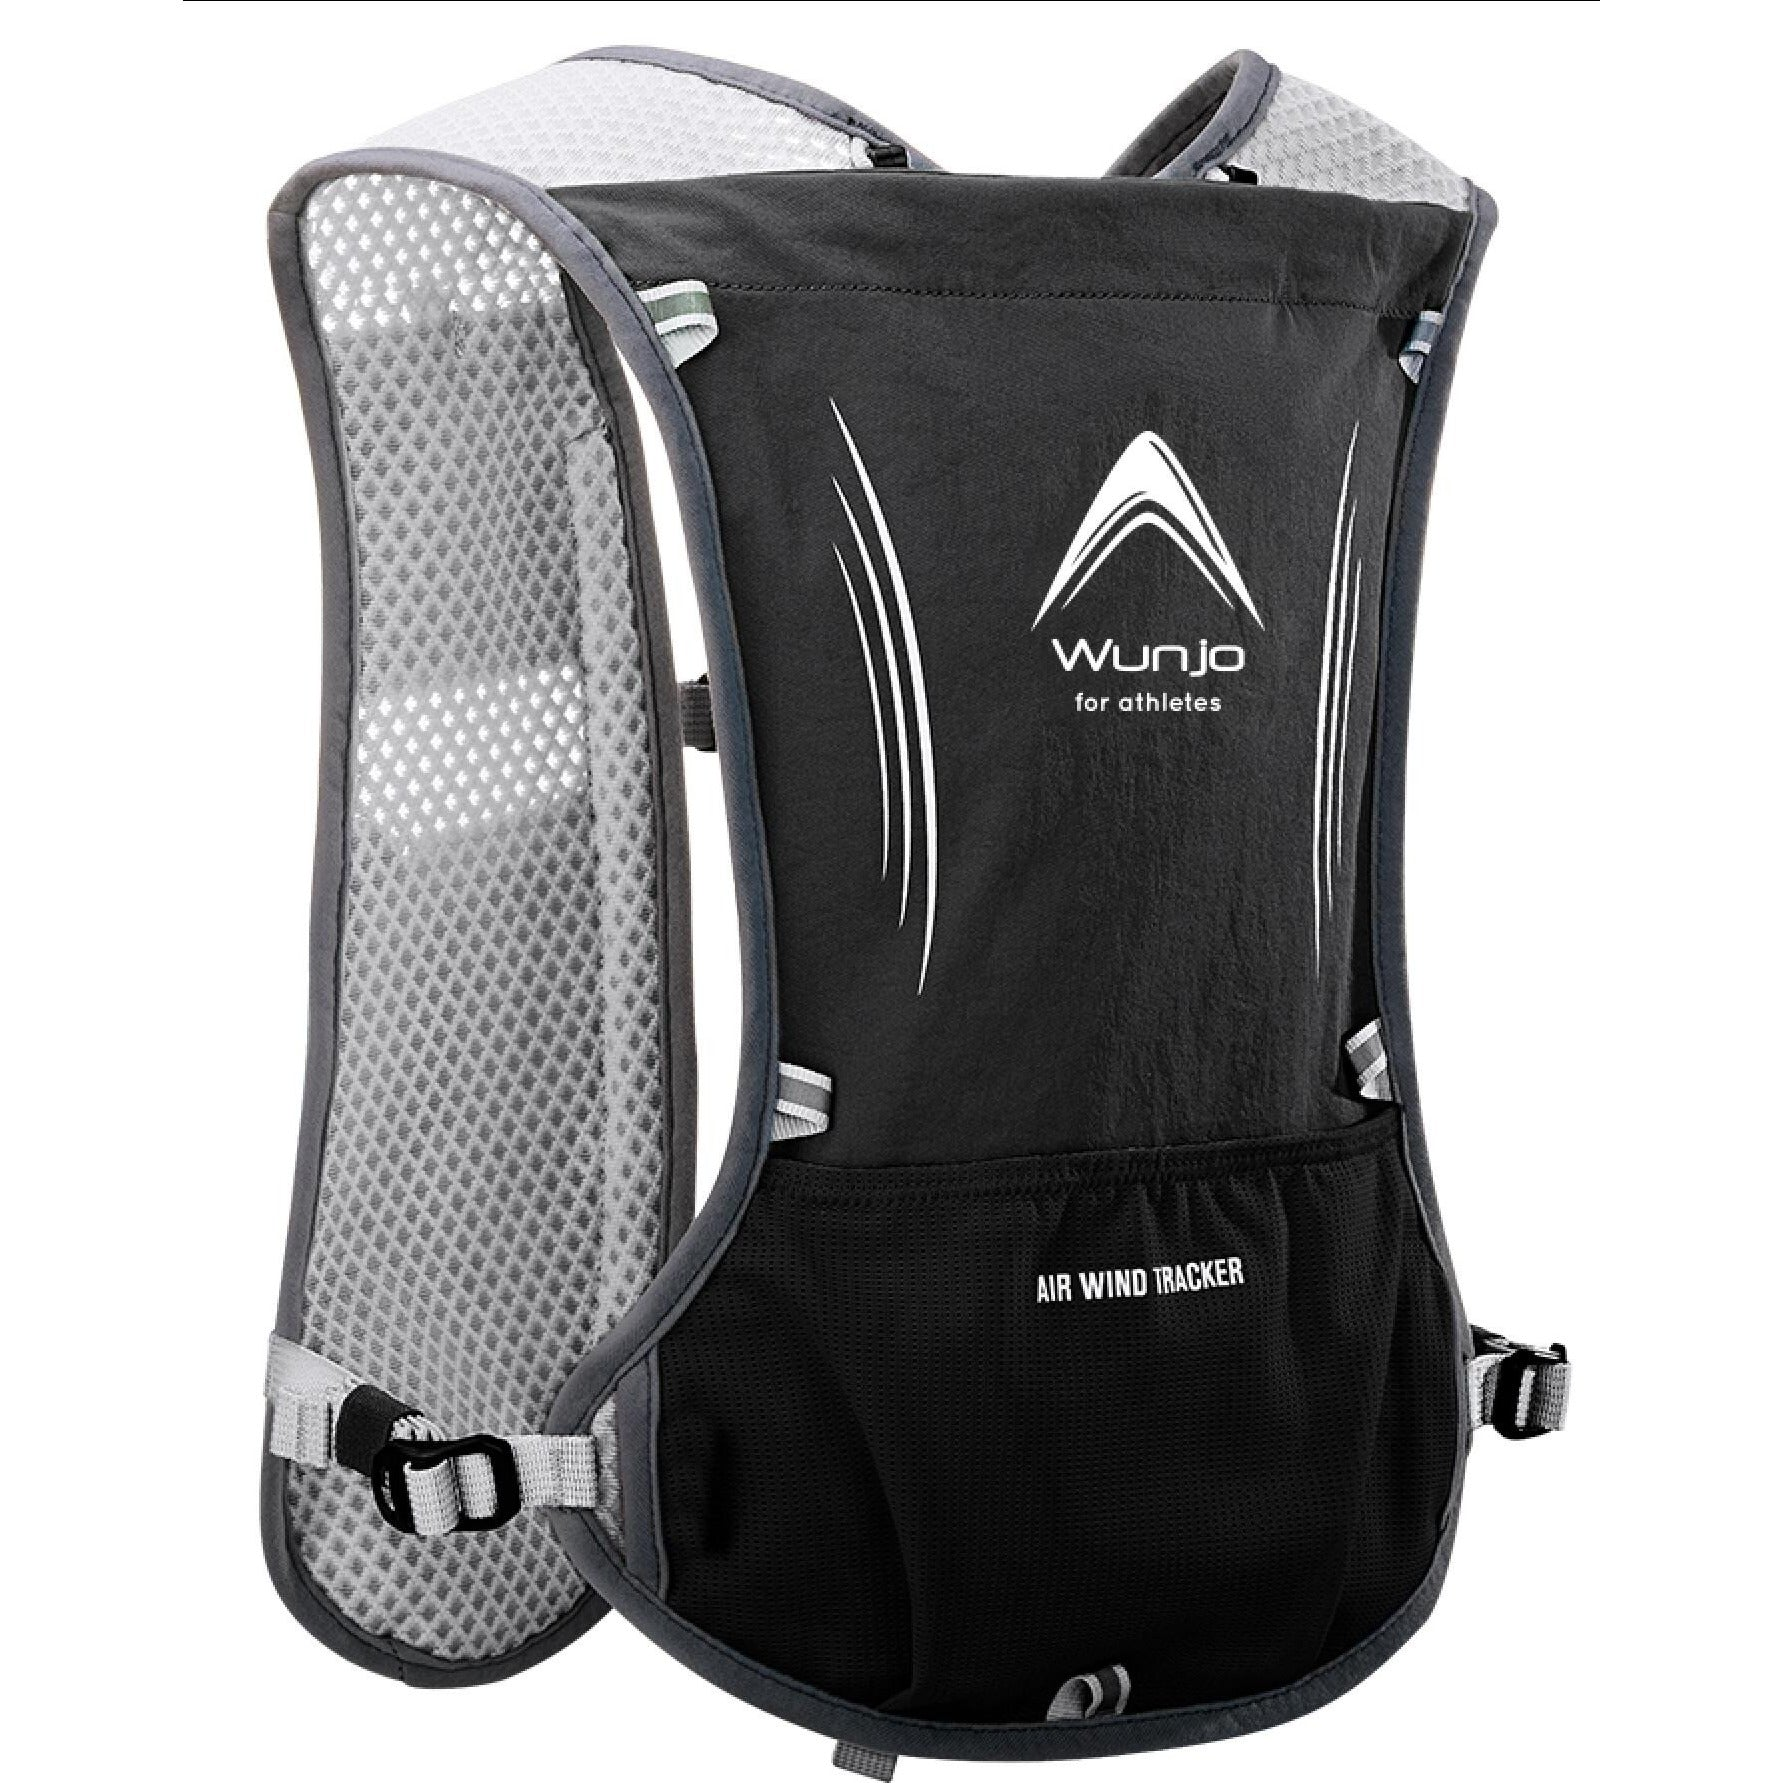 Wunjo X2 Race - Lightweight racing hydration vest